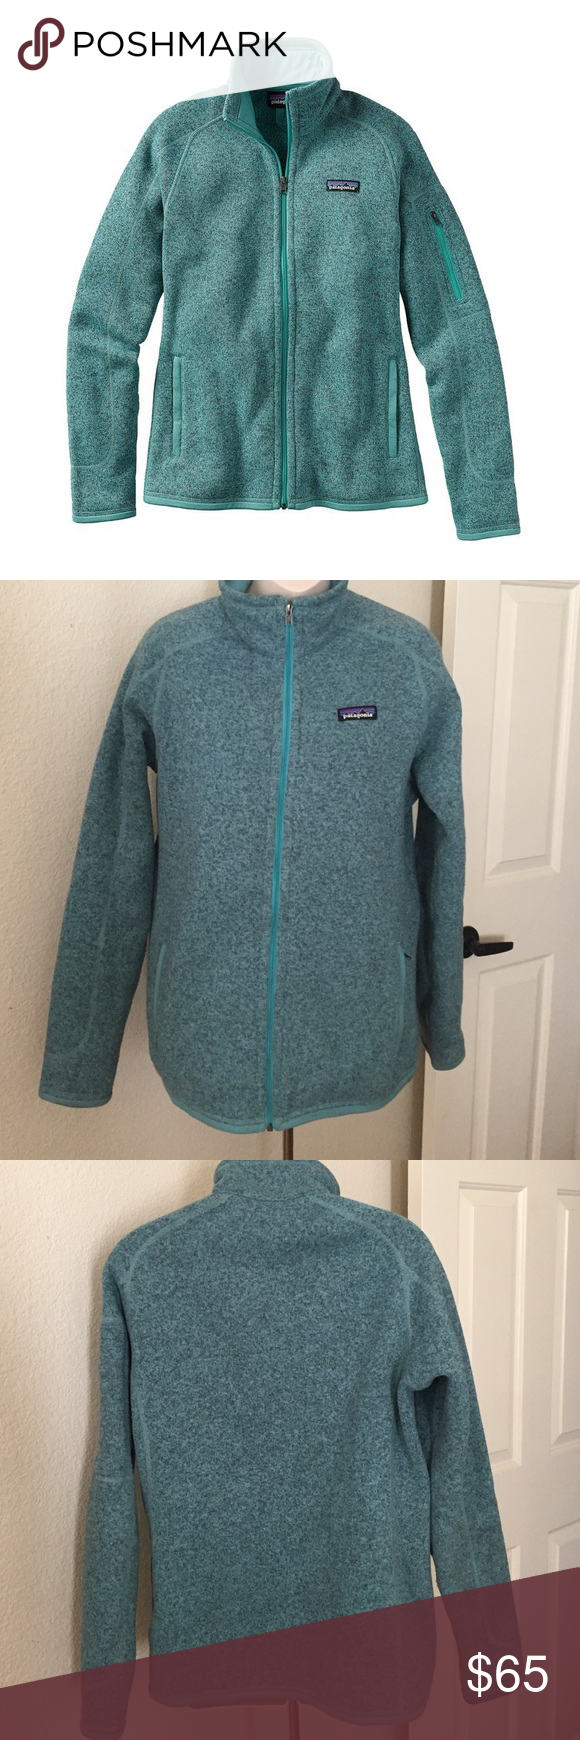 """Patagonia Better Sweater Ultramarine Fleece Zip Up This is a Patagonia better sweater Zip Up hoodie. Size medium. Color is ultramarine. Made of warm, midweight polyester fleece. Front zipper has a wind flap and kissing-welt closure Raglan sleeves, princess seams on back, and forward seams on front for contoured shape and fit Zippered handwarmer pockets; interior drop-in pockets Polyester jersey fabric trim on wind flap, pockets, cuffs and hem. Bust 42"""" length 27"""". Great condition. Patagonia…"""